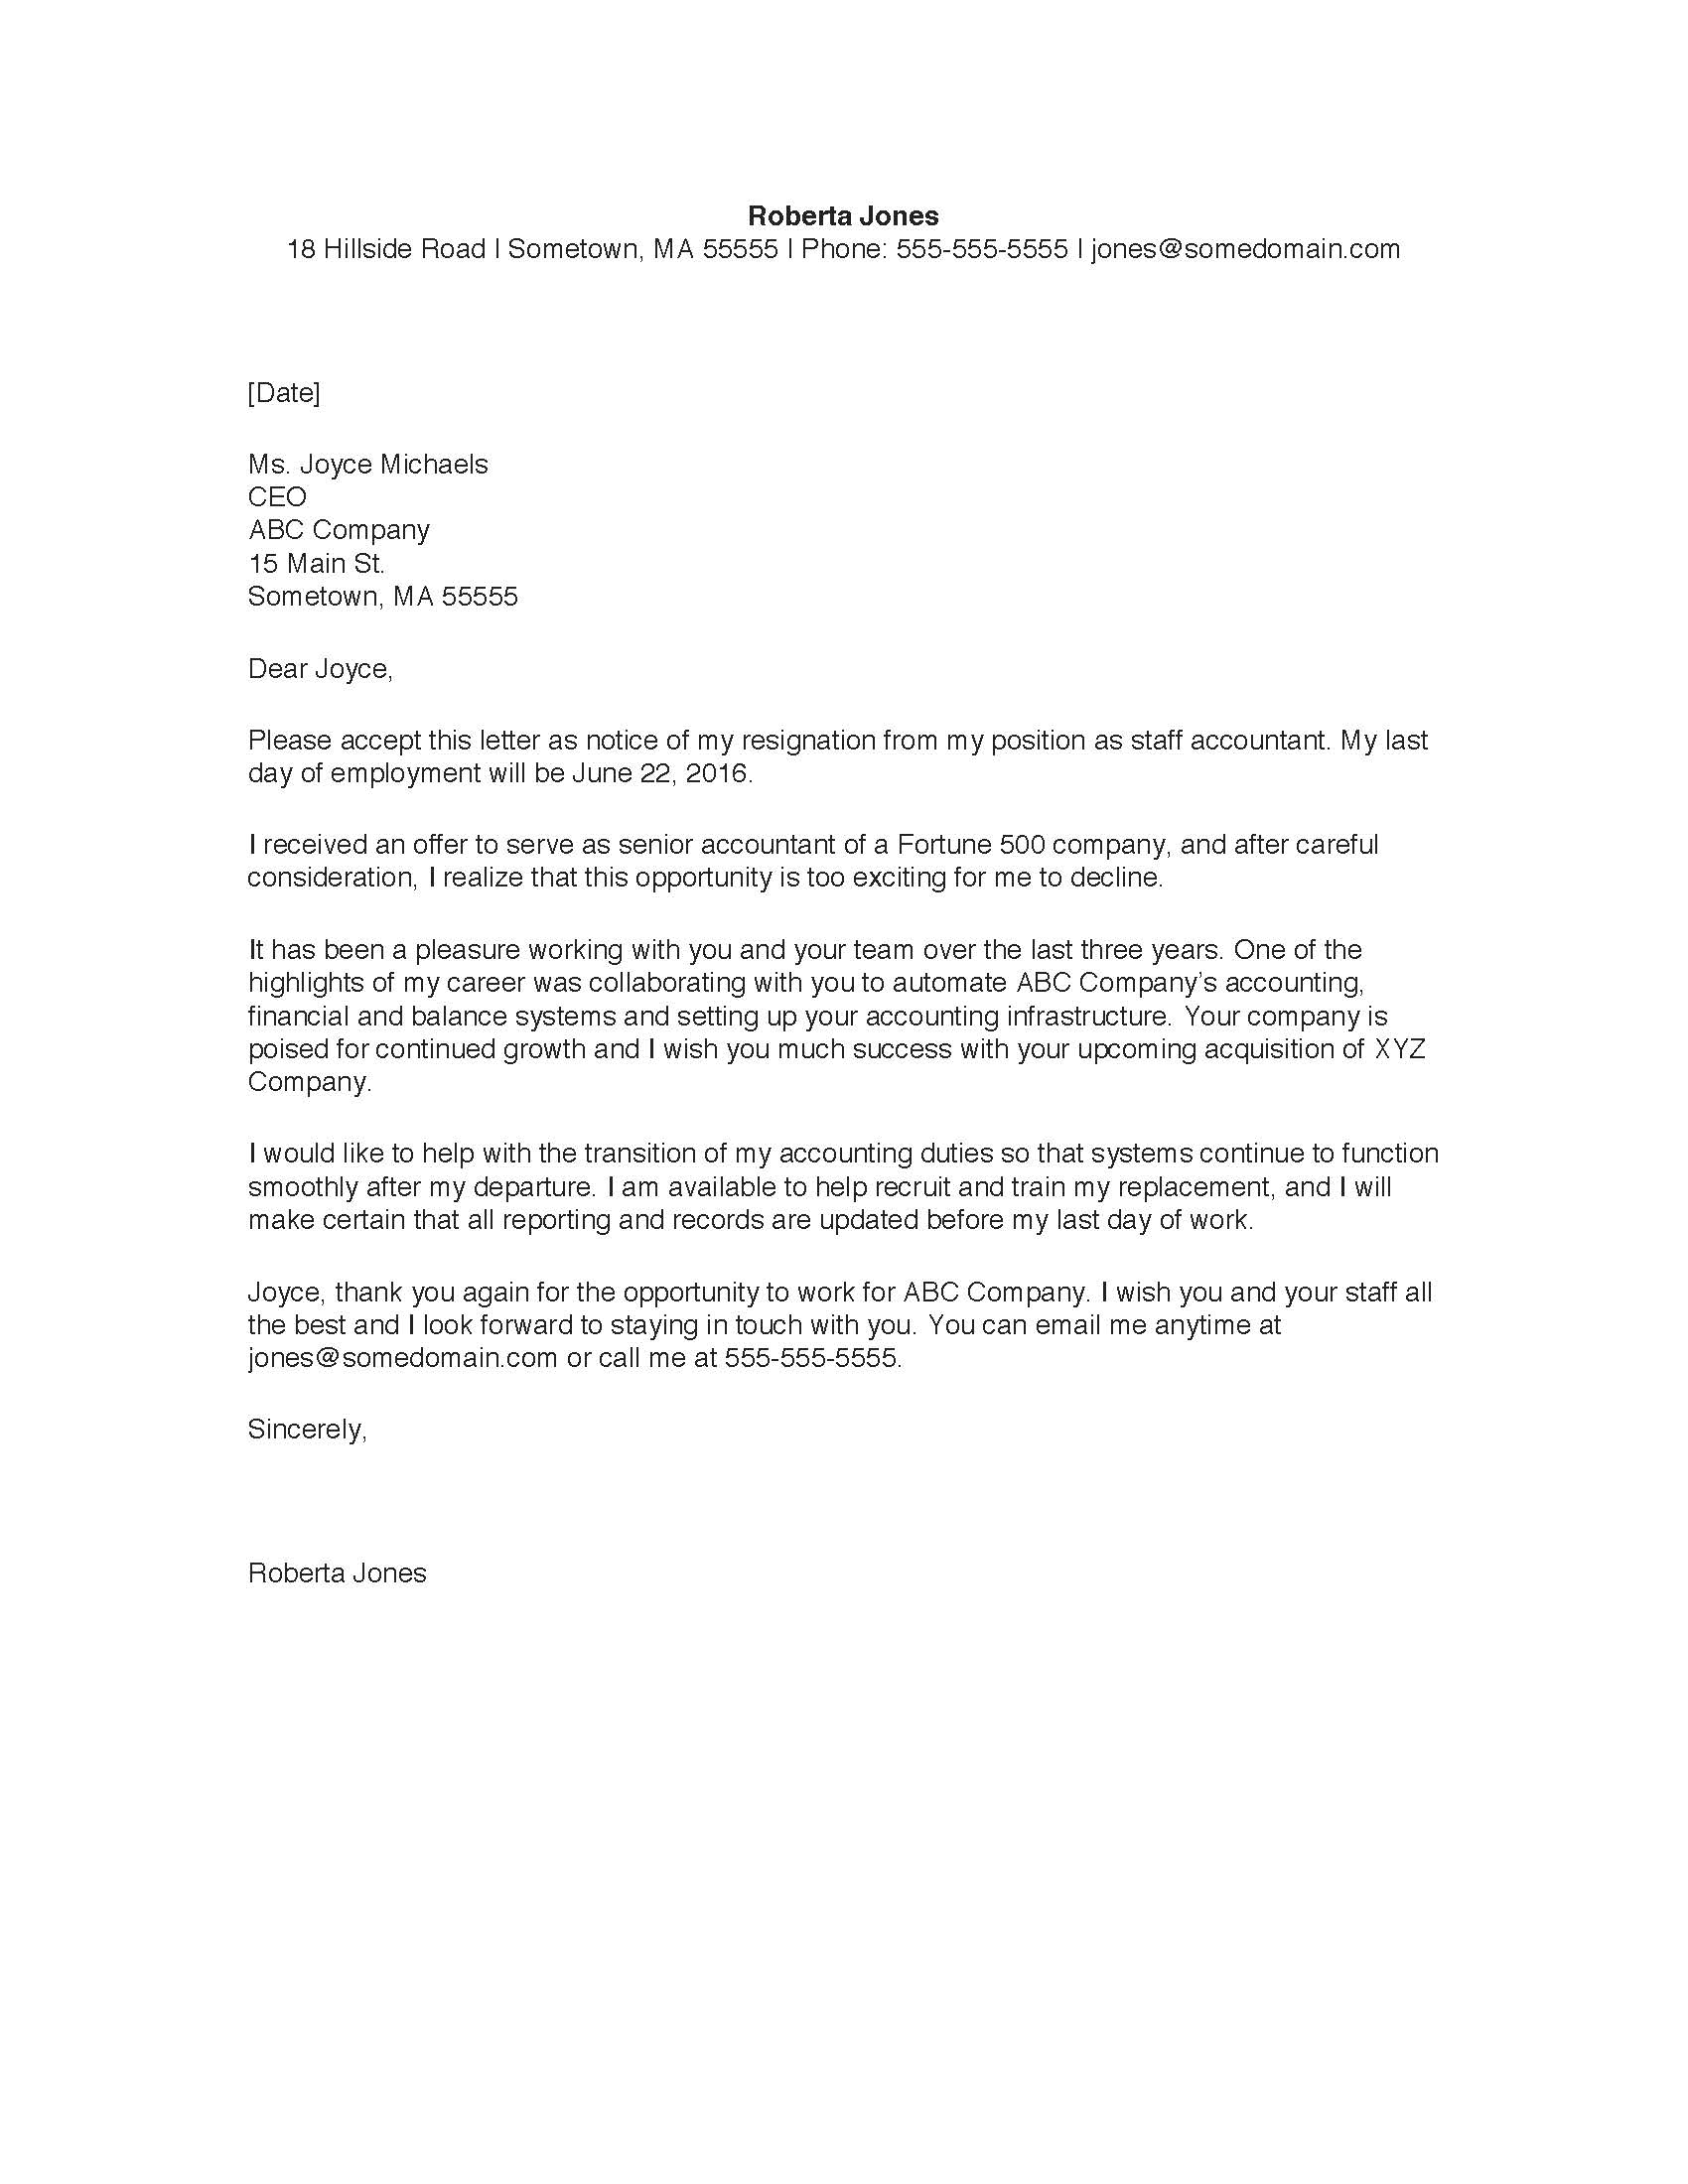 Letter For Resignation Grude Interpretomics Co